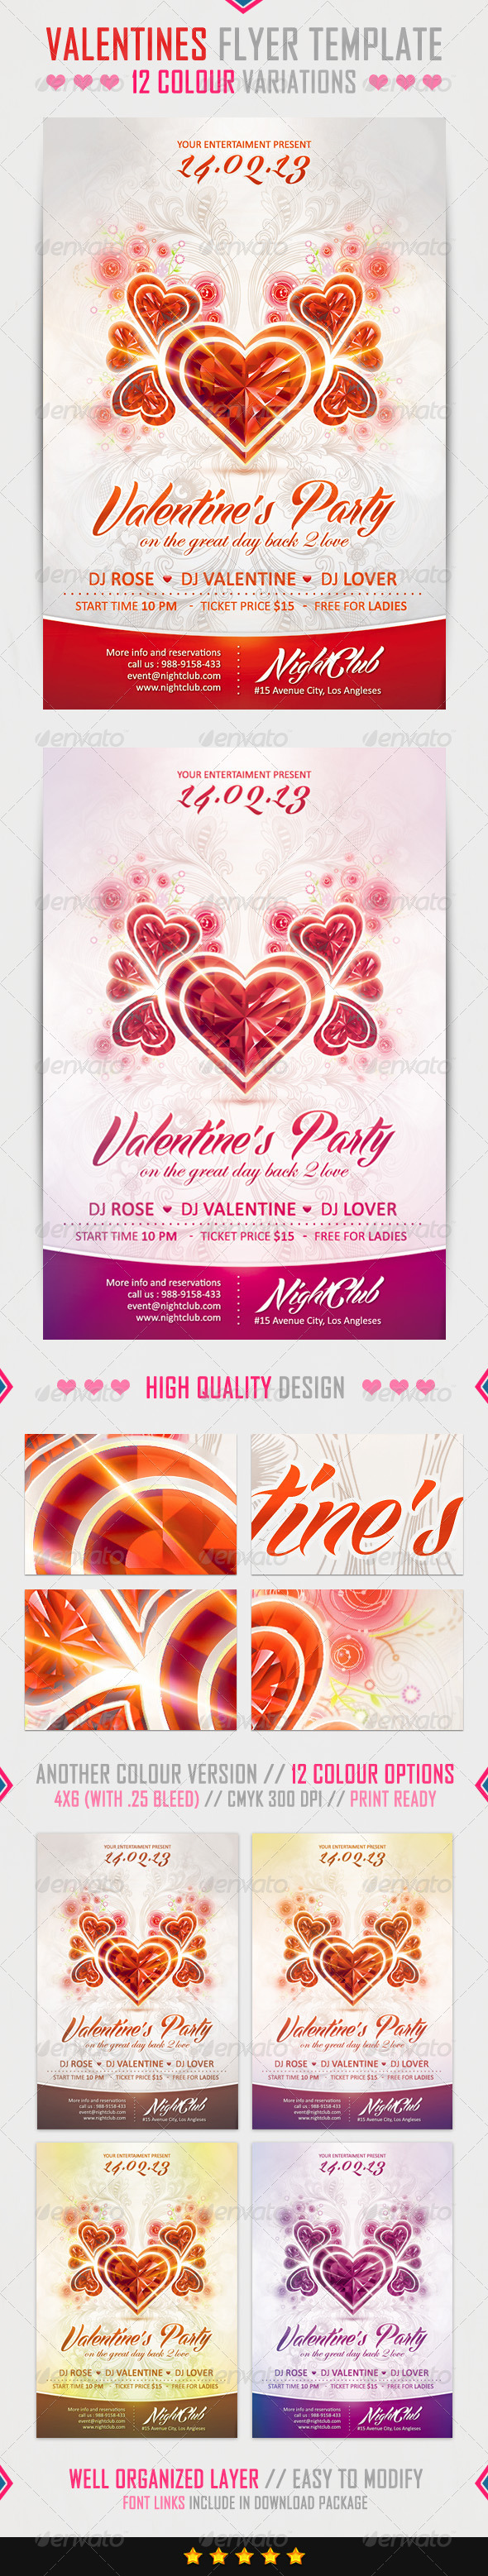 GraphicRiver Valentine s Flyer Template 3990950